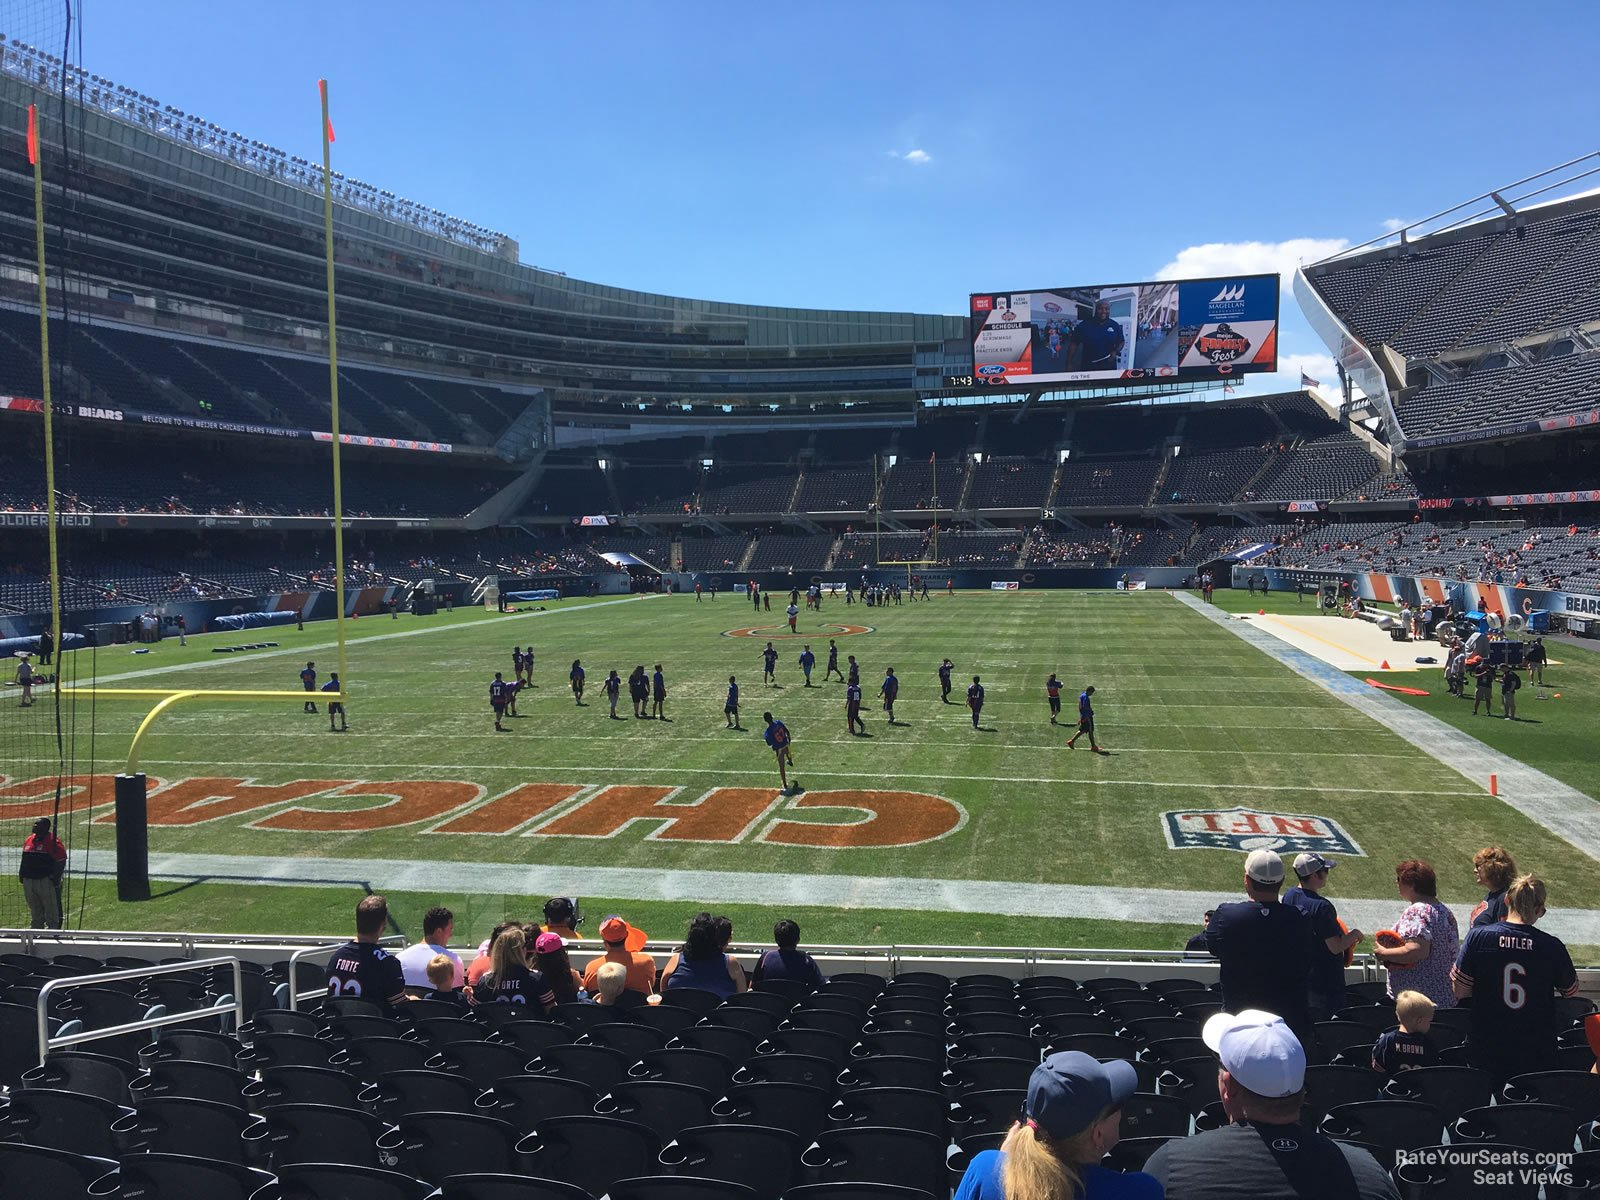 Soldier Field Section 150 - Chicago Bears - RateYourSeats.com